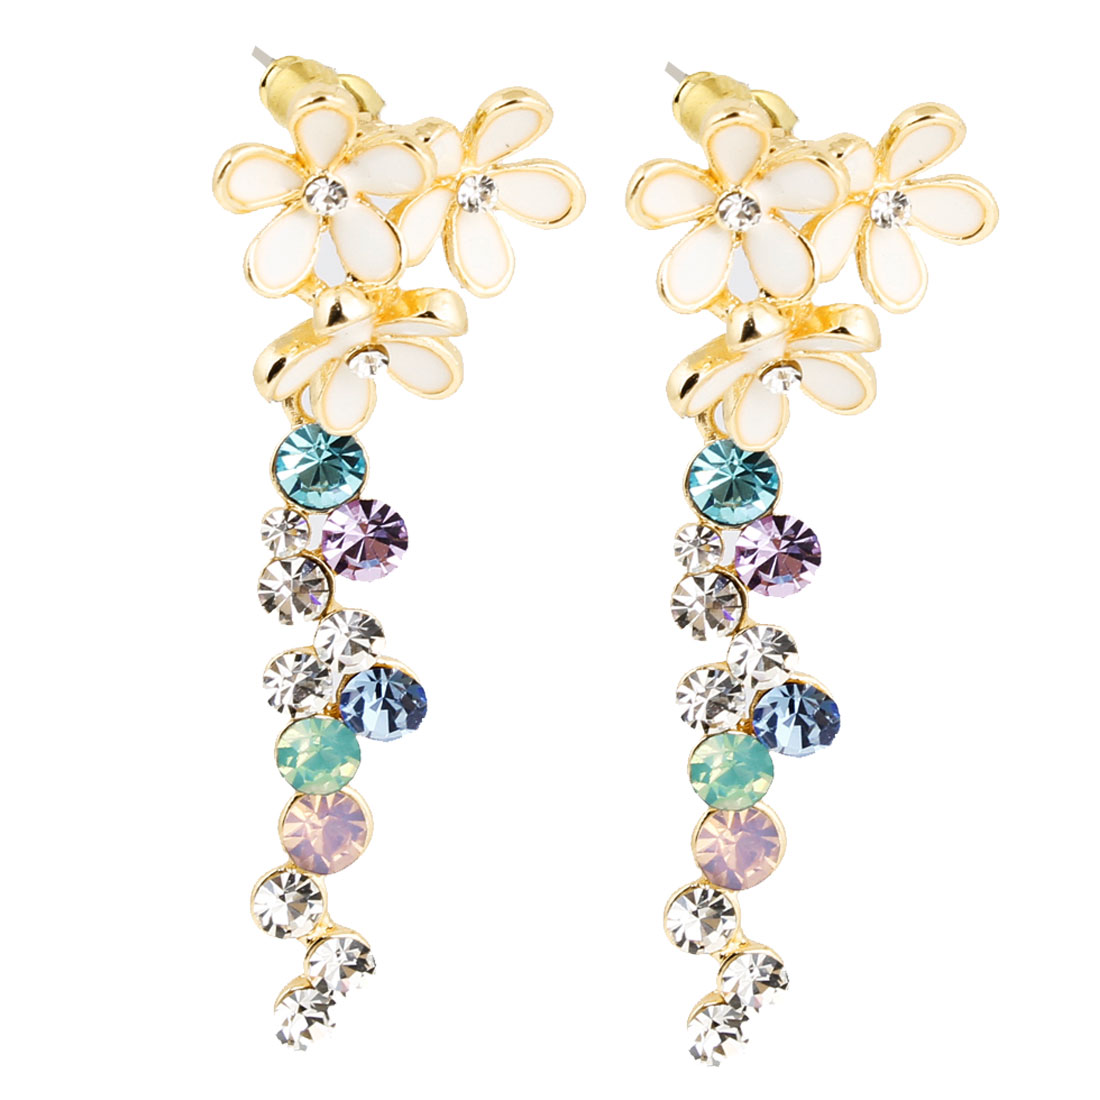 Ladies Colorful Rhinestone Inlaid Pendant Dangling Stud Earrings